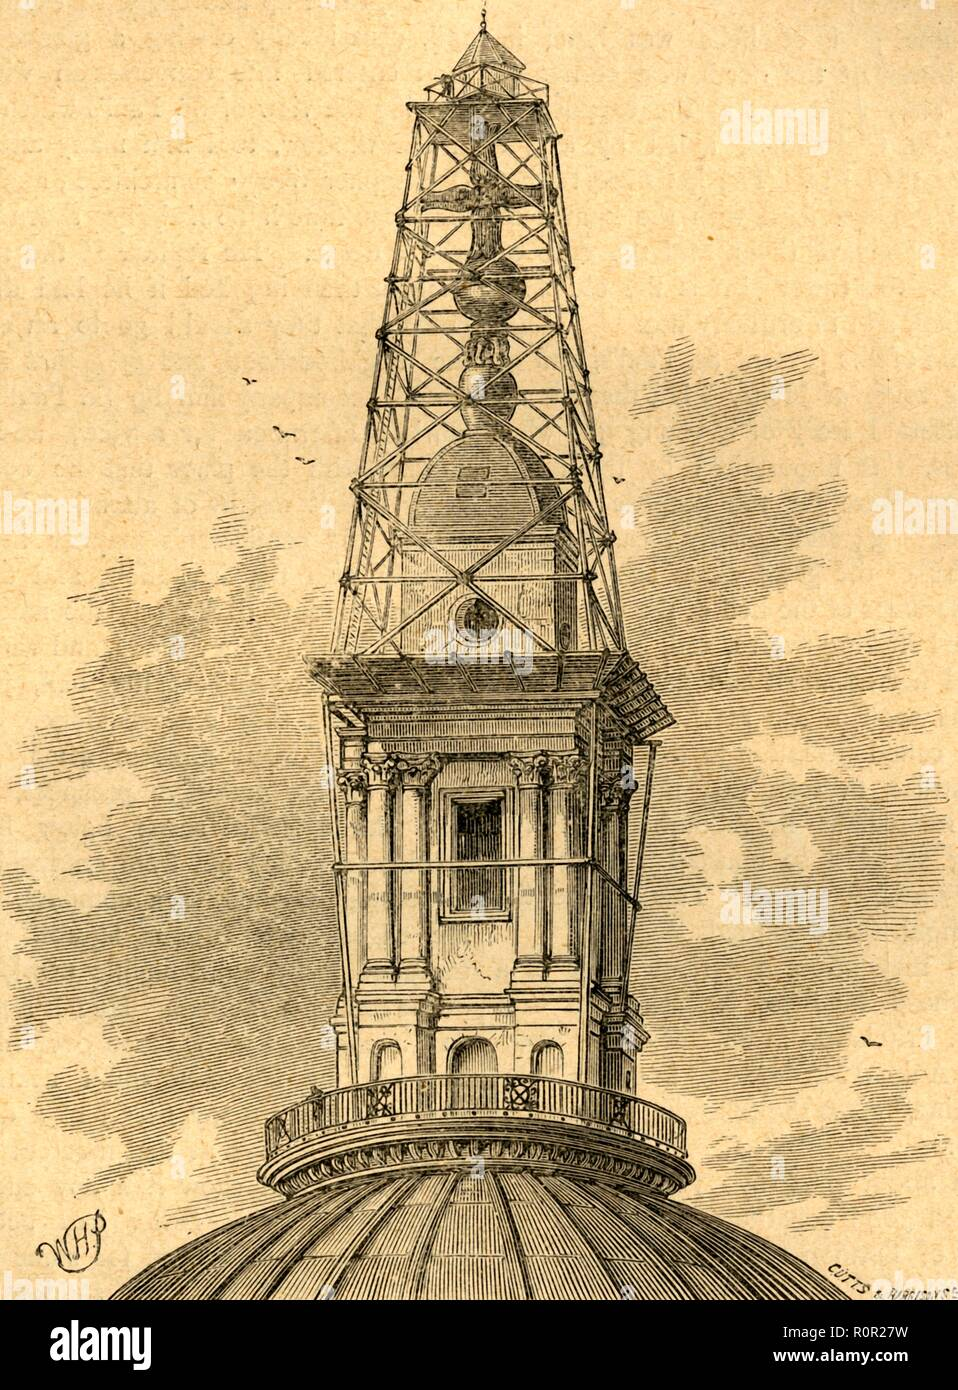 'The Scaffolding and Observatory on St. Paul's in 1848', (1897). Observation post built by officers of the Royal Engineers on top of the cross on St Paul's Cathedral in London. Triangulation measurements were taken from here in order to make a new map of London. The map was used to plan drastic improvements to the methods of drainage and sewage disposal, in order to prevent cholera epidemics in the capital. From Old and New London, Volume I, by Walter Thornbury. [Cassell and Company, Limited, London, Paris & Melbourne, 1897] - Stock Image